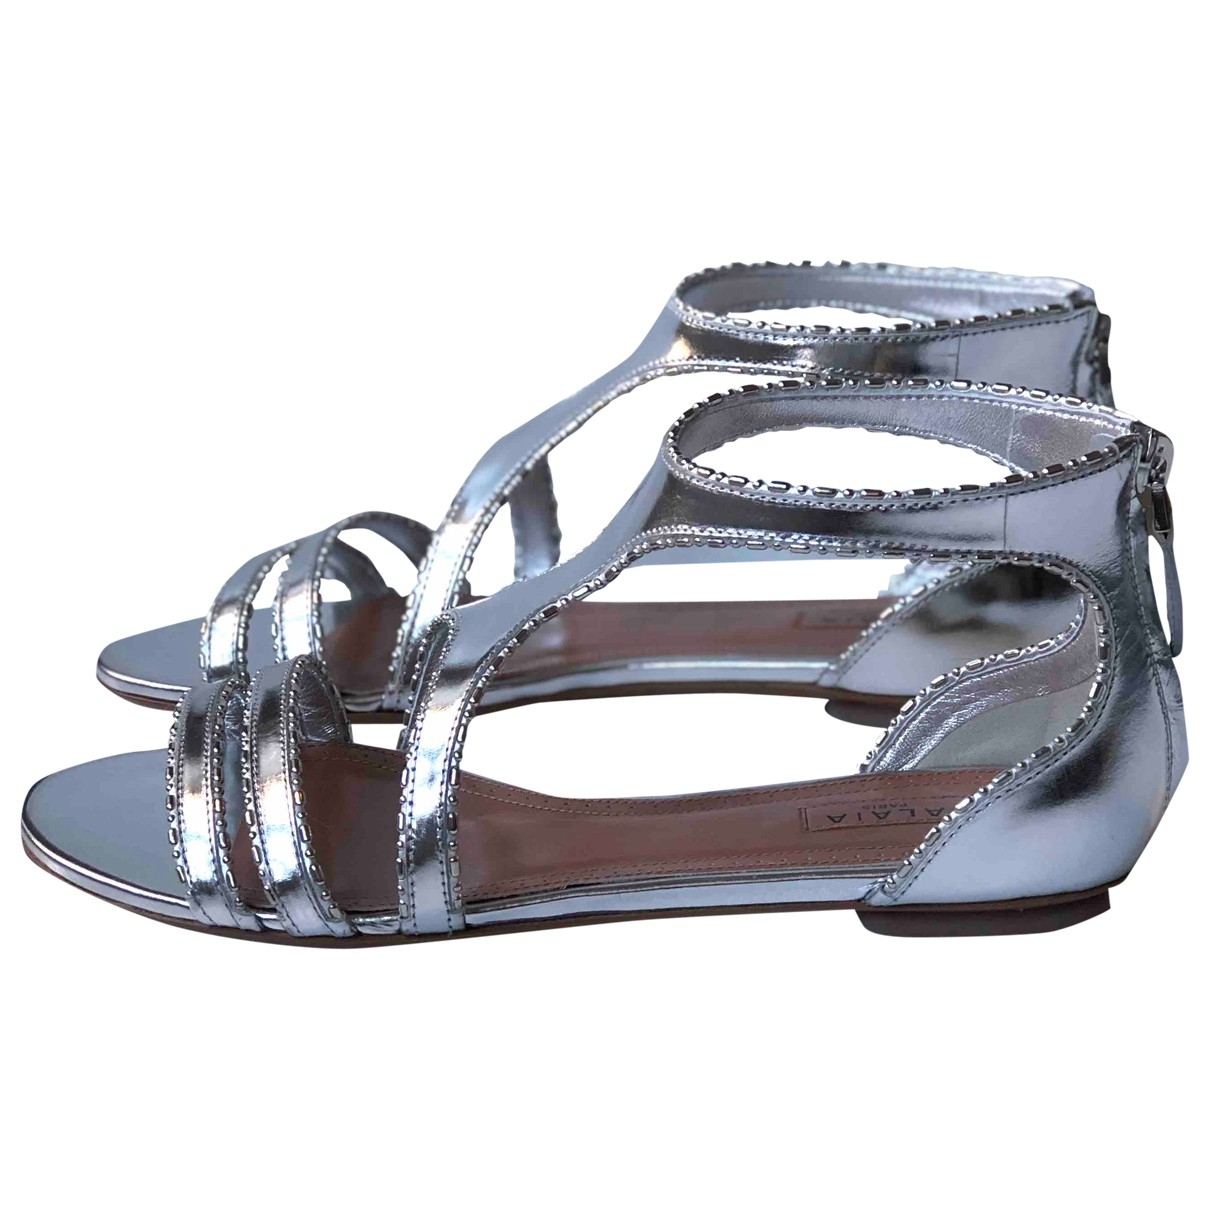 Alaïa \N Silver Leather Sandals for Women 37.5 EU